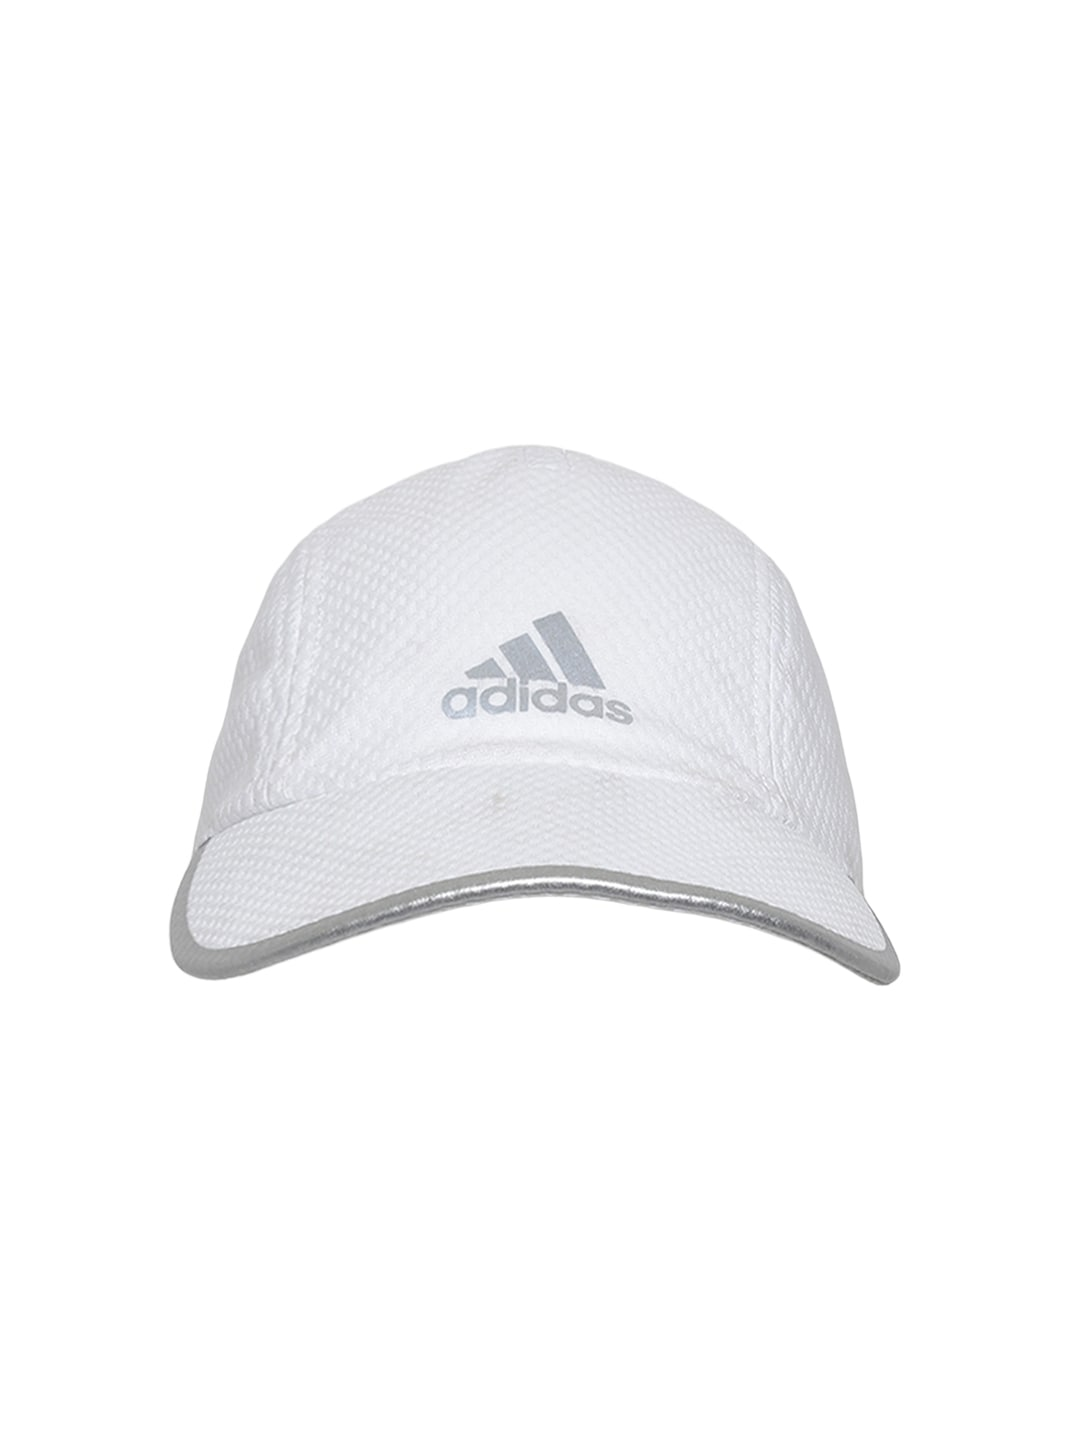 77cc2321b7bd9 Adidas Men Caps - Buy Adidas Men Caps online in India